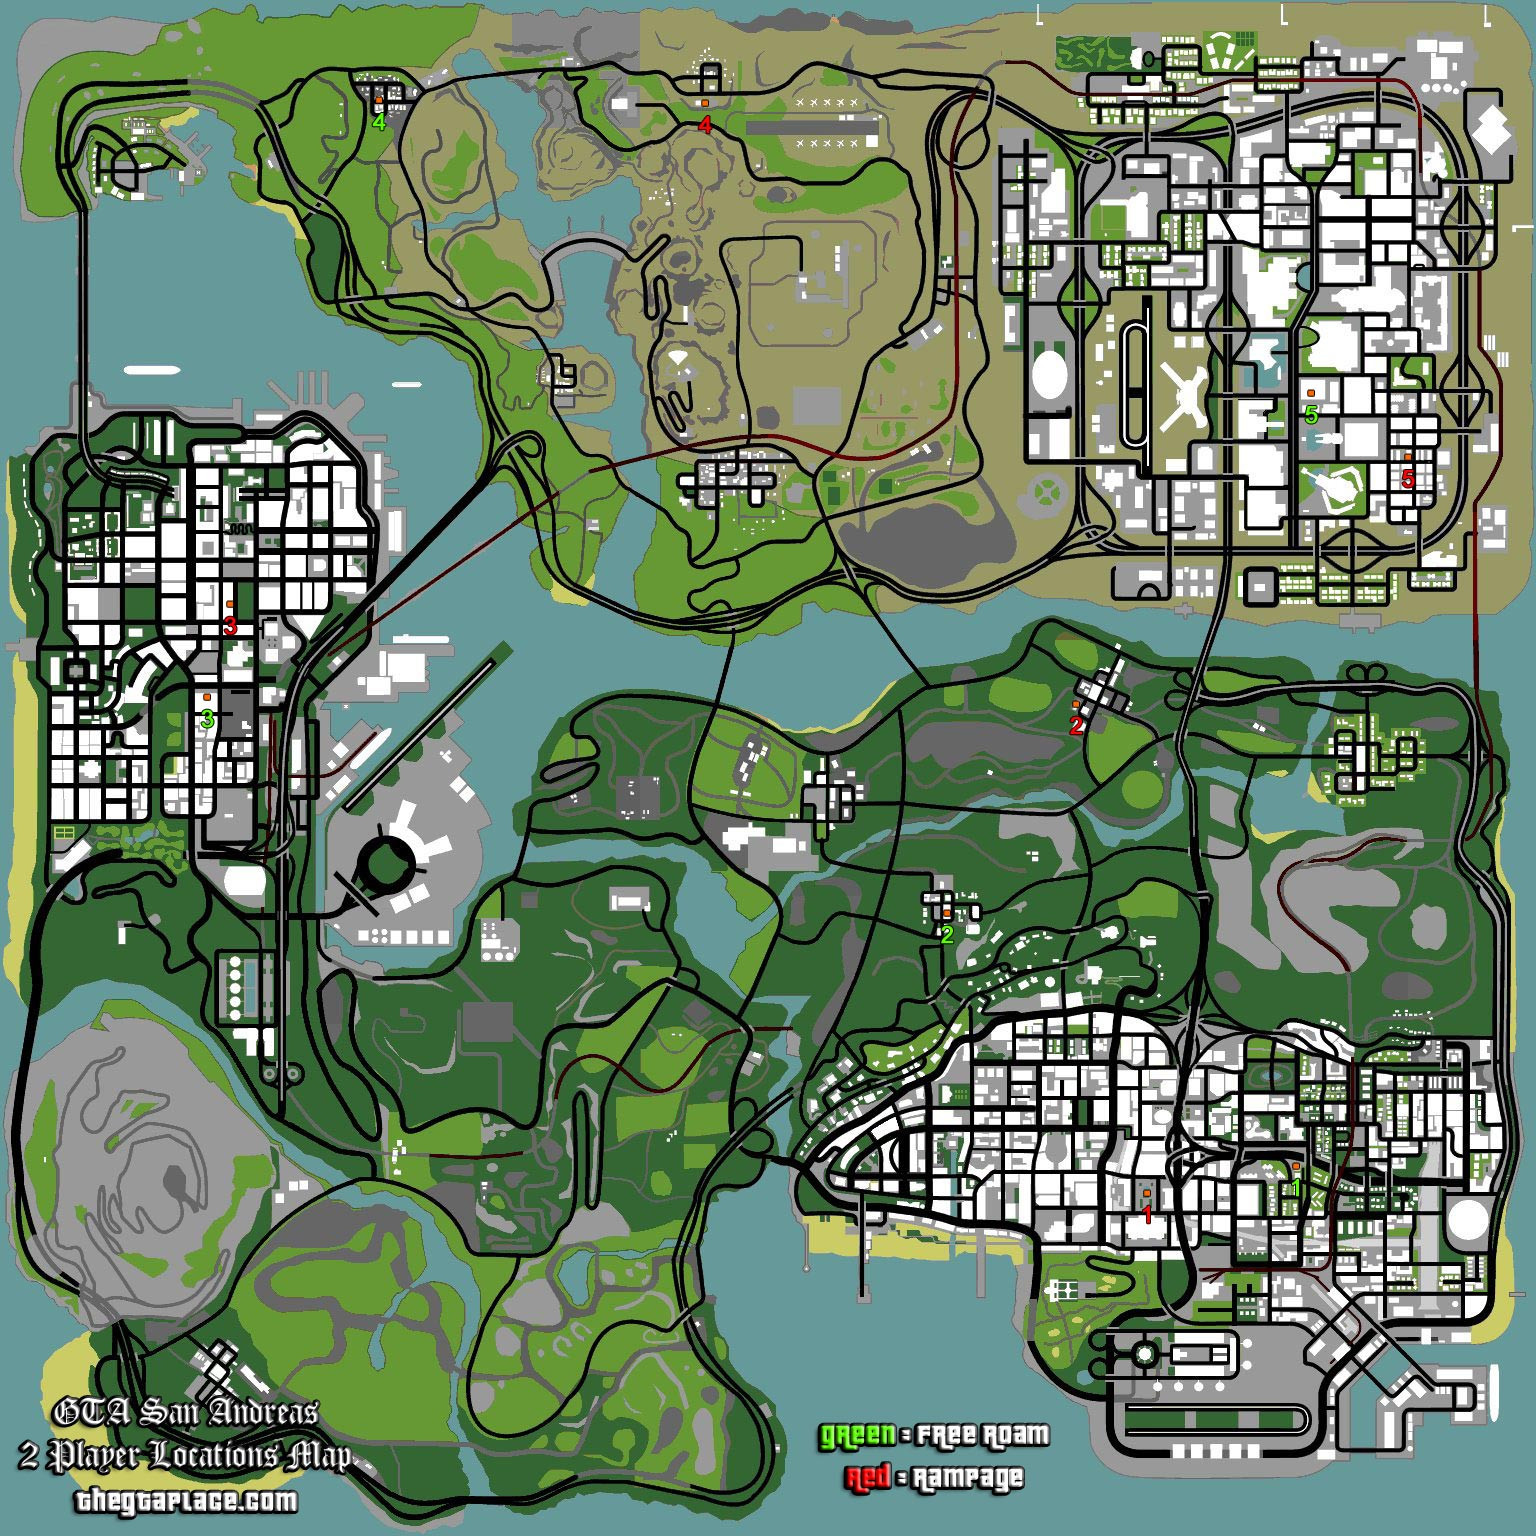 2 Player Locations